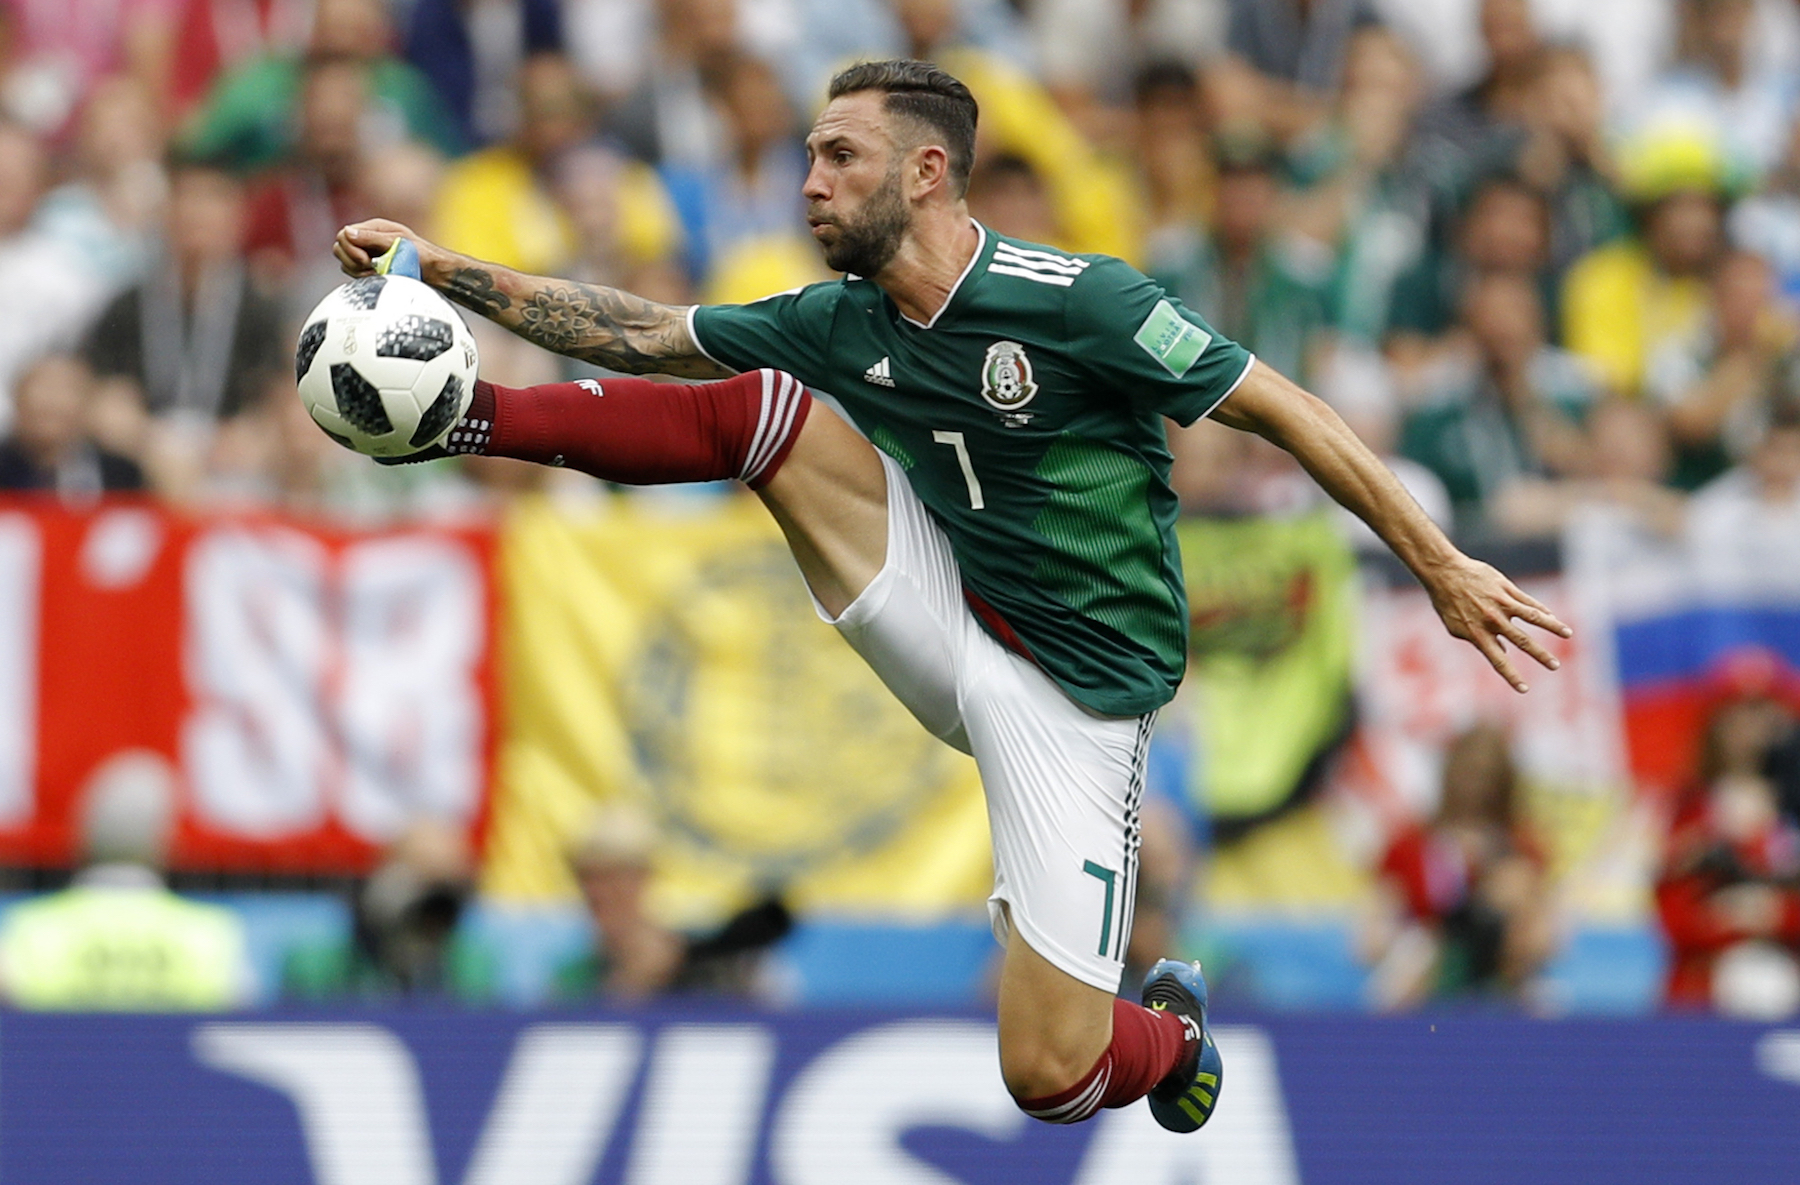 <div class='meta'><div class='origin-logo' data-origin='AP'></div><span class='caption-text' data-credit='AP Photo/Victor R. Caivano'>Mexico's Miguel Layun controls the ball during the group F match between Germany and Mexico at the 2018 soccer World Cup in the Luzhniki Stadium.</span></div>